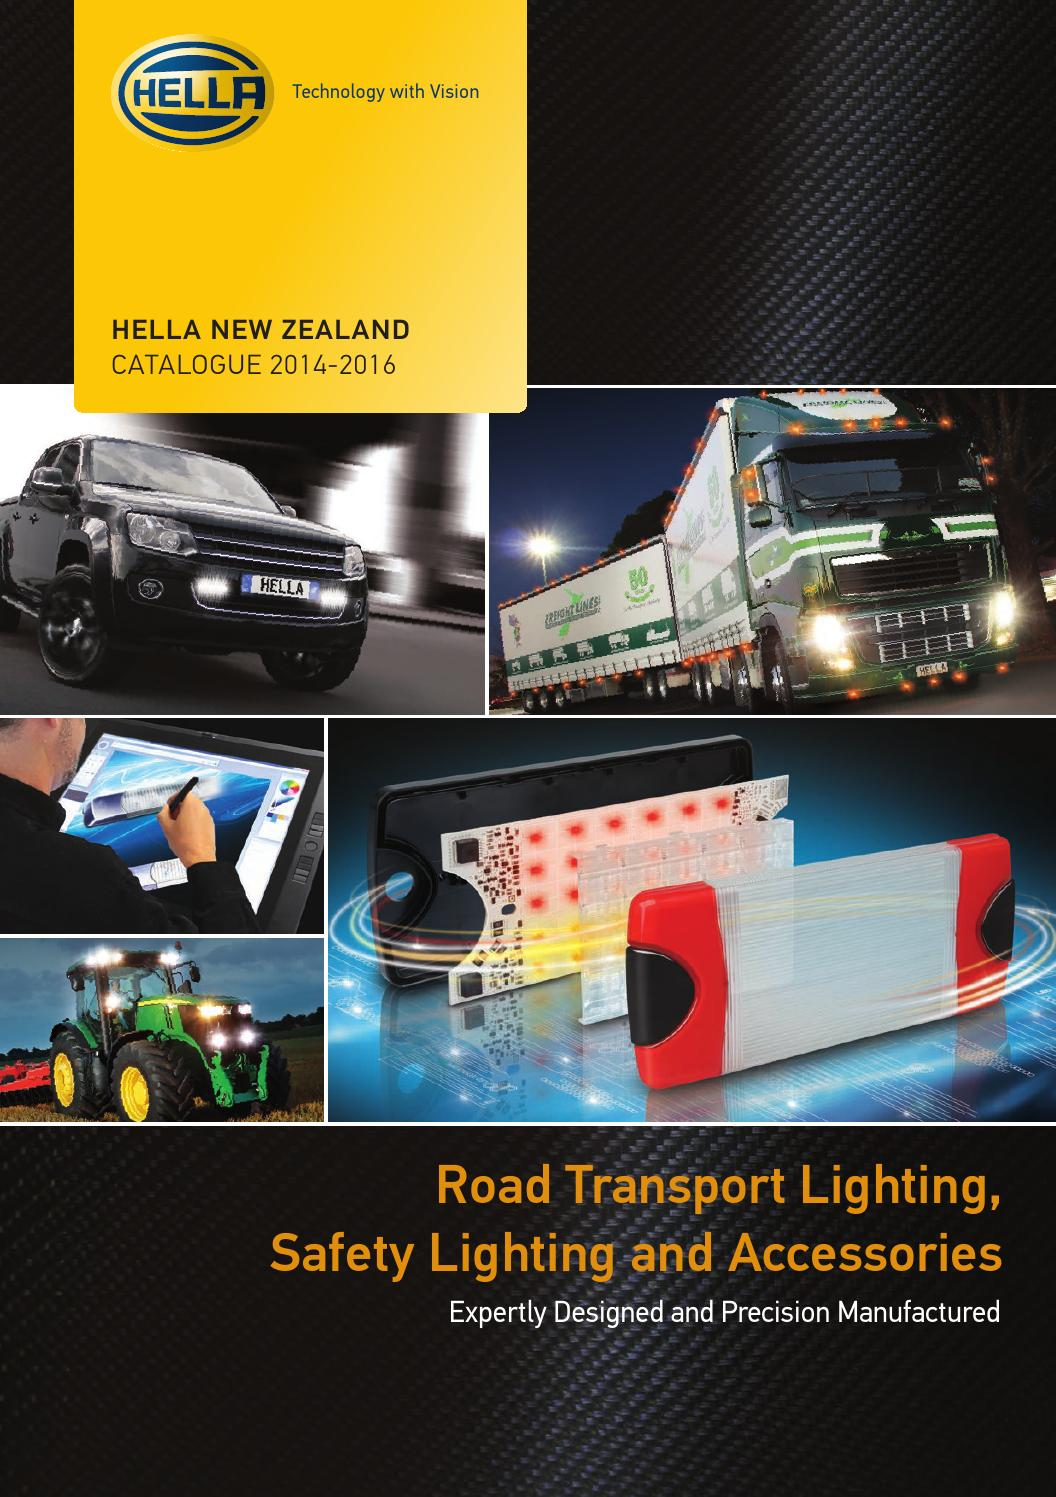 hella flasher wiring diagram hella new zealand catalogue 2014 2016 by hella nz issuu  hella new zealand catalogue 2014 2016